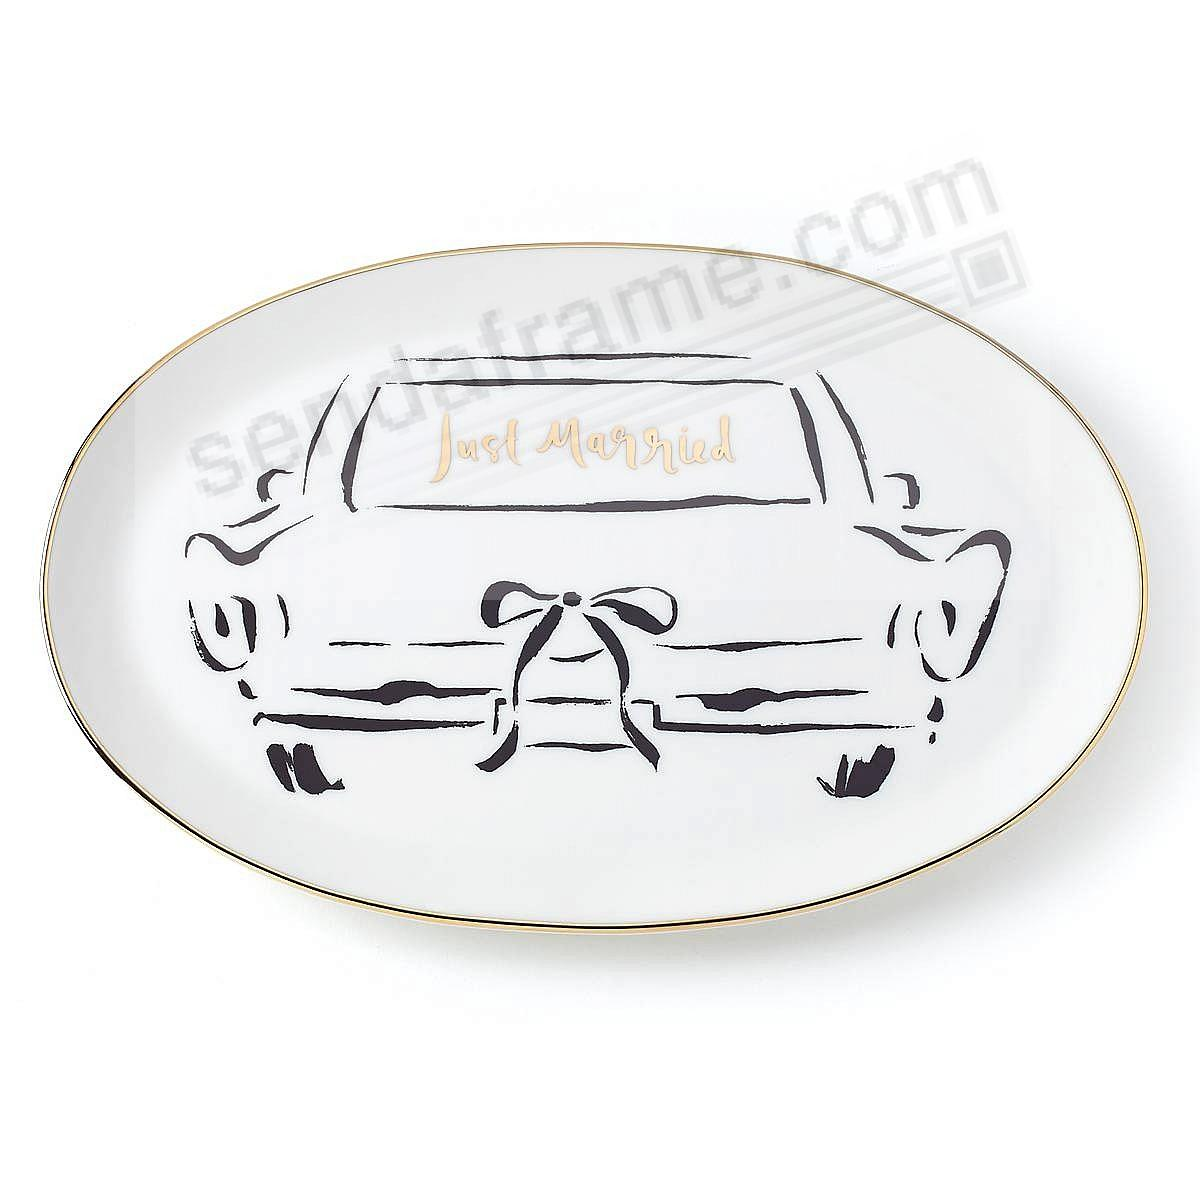 BRIDAL PARTY OBLONG DISH by kate spade new york®